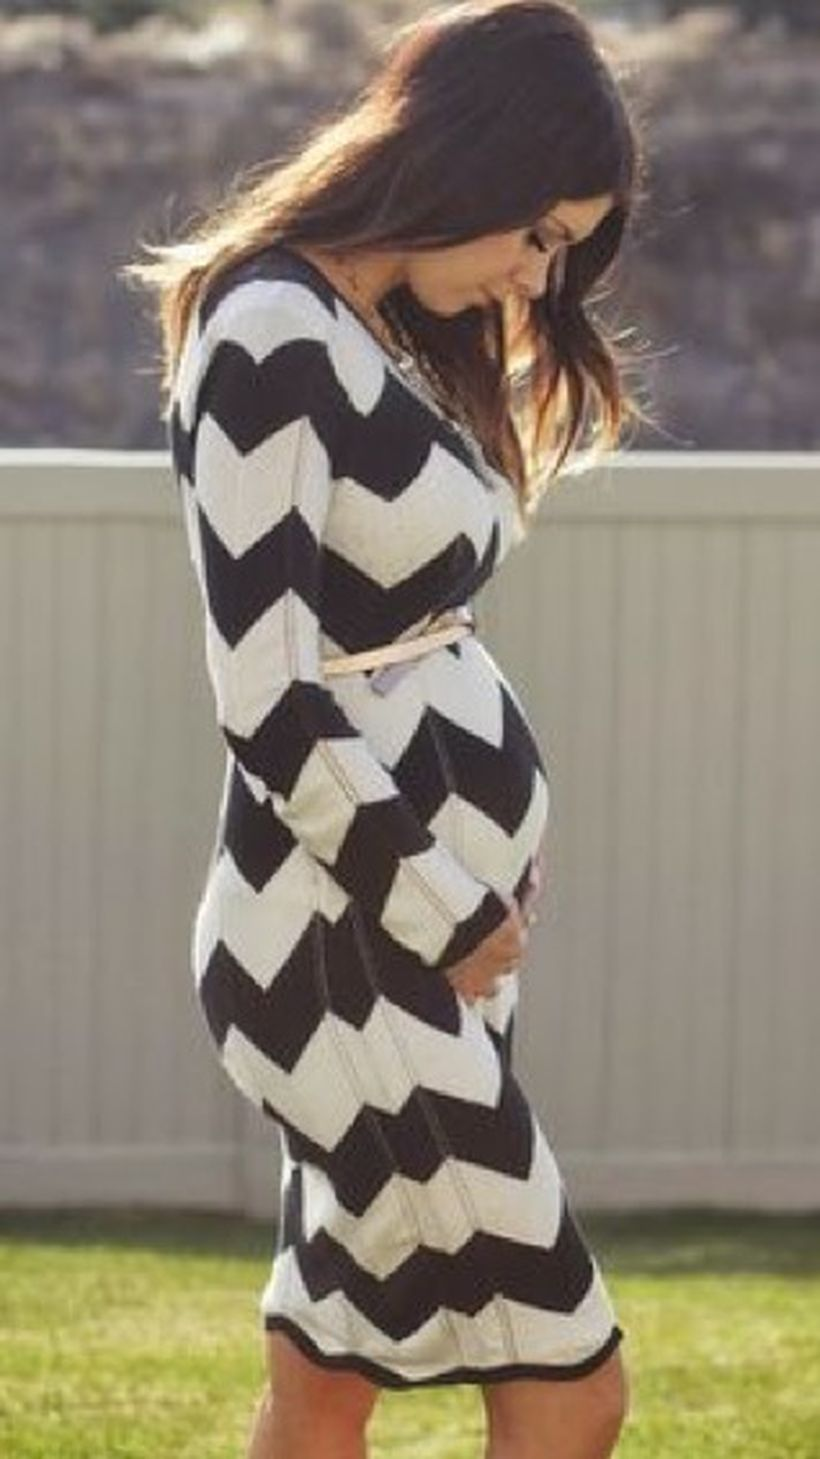 Fashionable maternity fashions outfits ideas 38